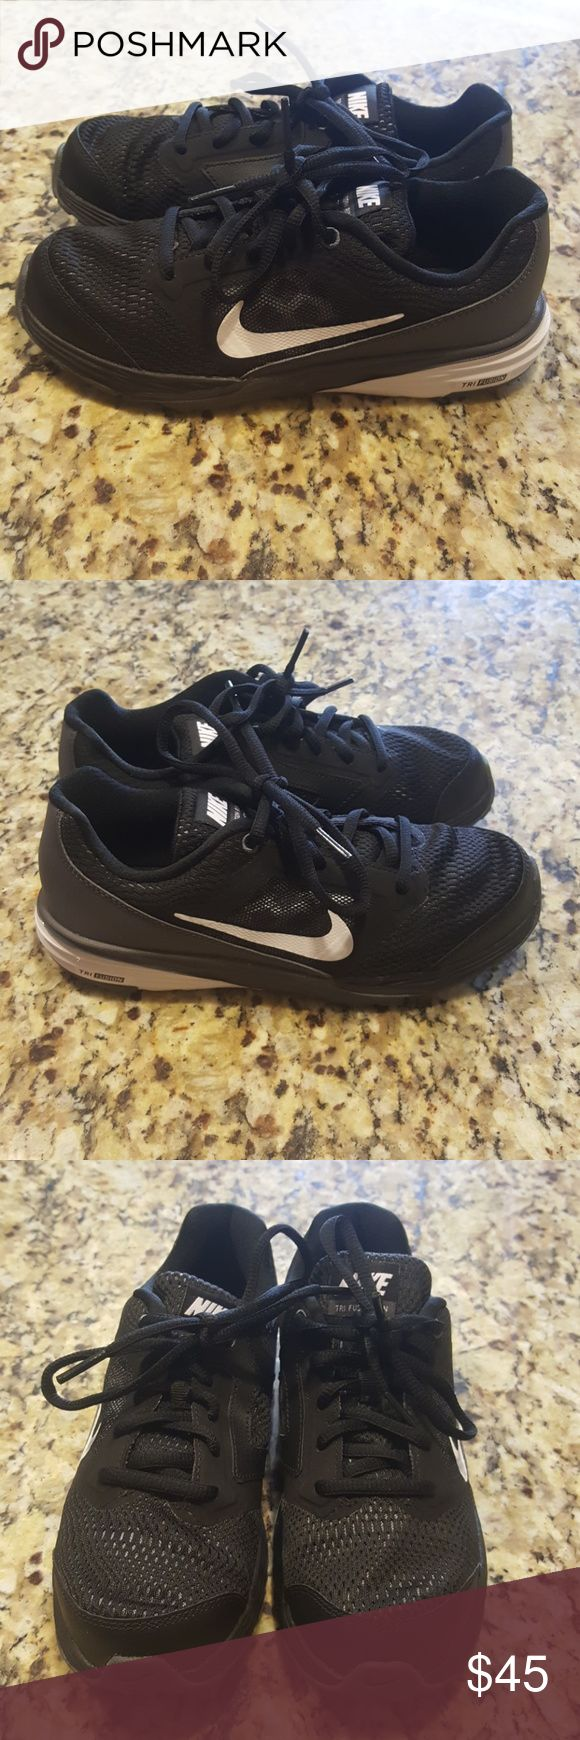 NIKE TRI FUSION RUN(BOYS)#749835-001 The Nike Tri Fusion Run Athletic feature a Synthetic upper with a Round Toe. The Man-Made outsole lends lasting traction and wear.(NEW)SNEAKERS WERE FLOOR MODEL THEY ARE IN PERFECT CONDITION PLEASE REVIEW ALL PIX 😊 Nike Shoes Sneakers